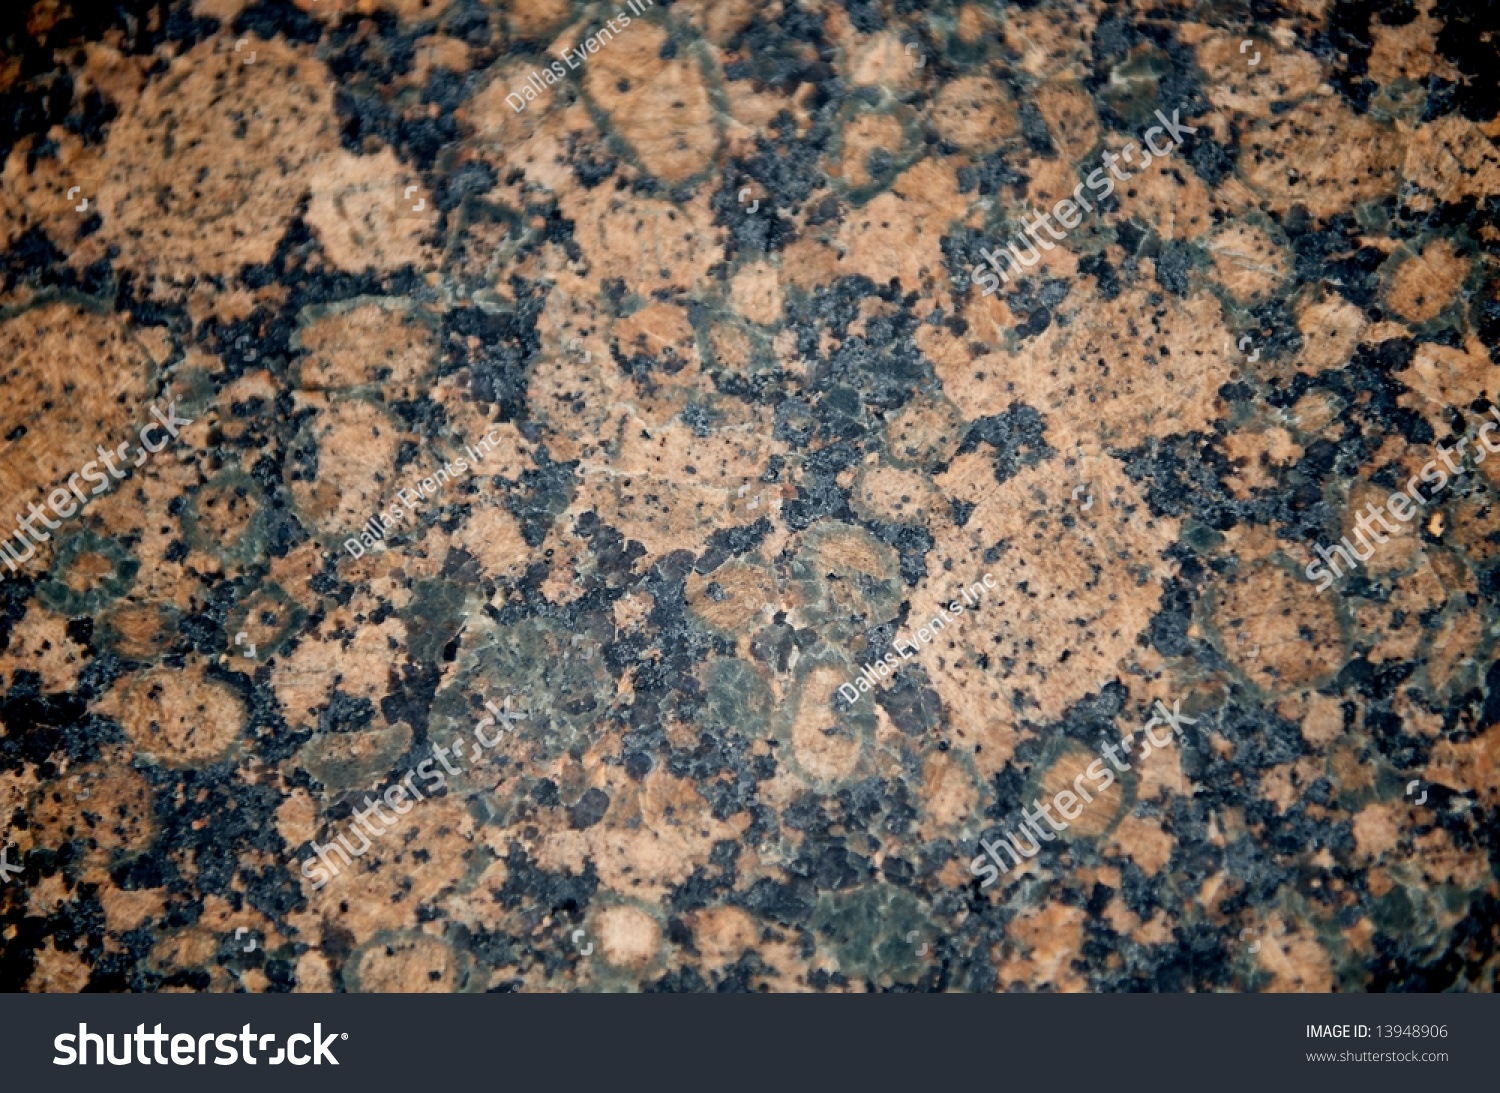 Red And Black Granite : Image of a black tan and pink patterned granite close up